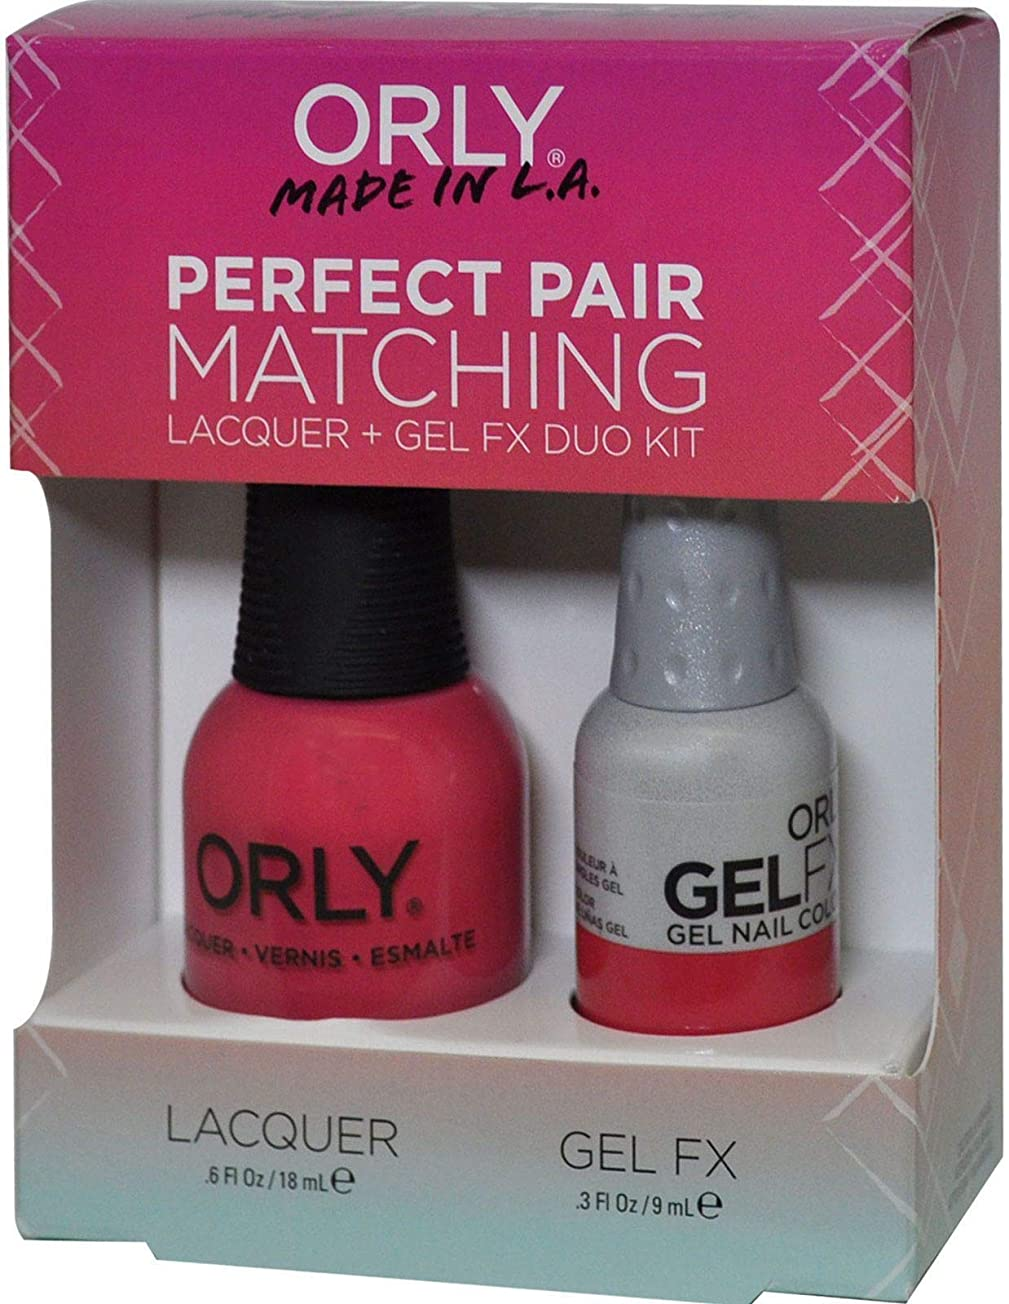 Orly Nail Lacquer + Gel FX - Perfect Pair Matching DUO - Lola